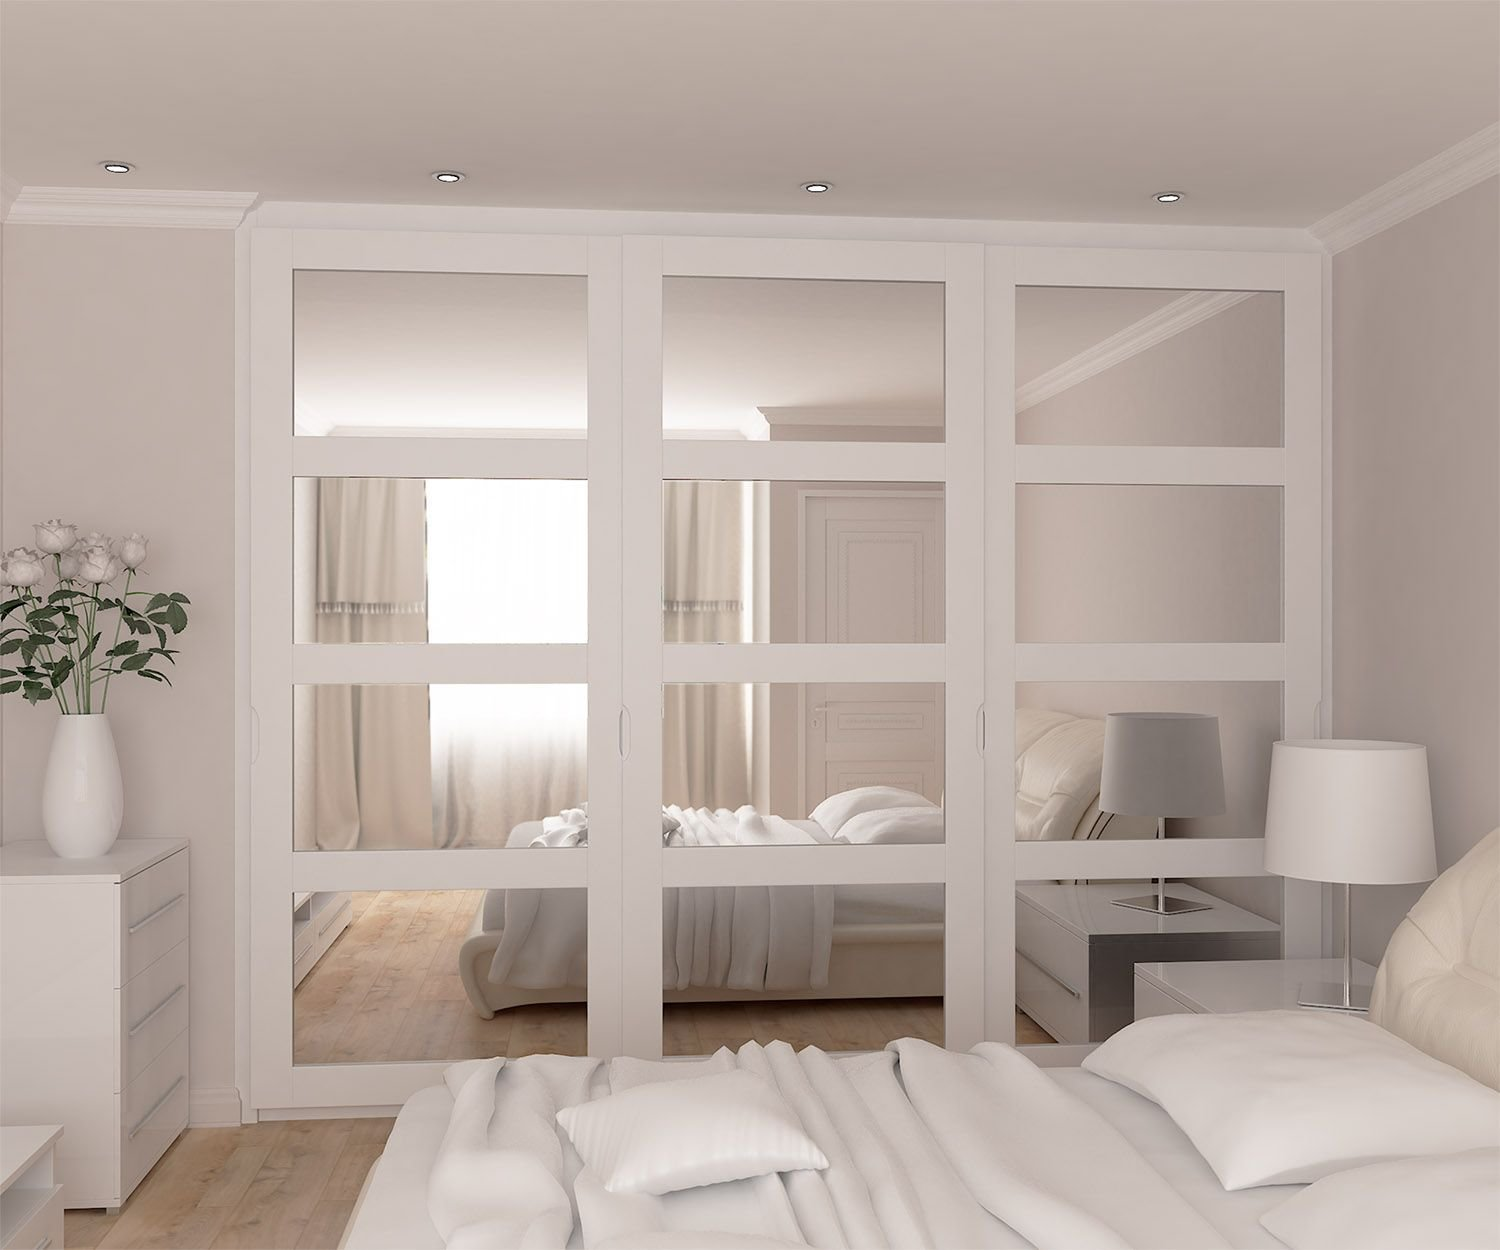 Best 20 Gorgeous Small Bedroom Ideas That Boost Your Freedom Decorate Organize Bedroom With Pictures